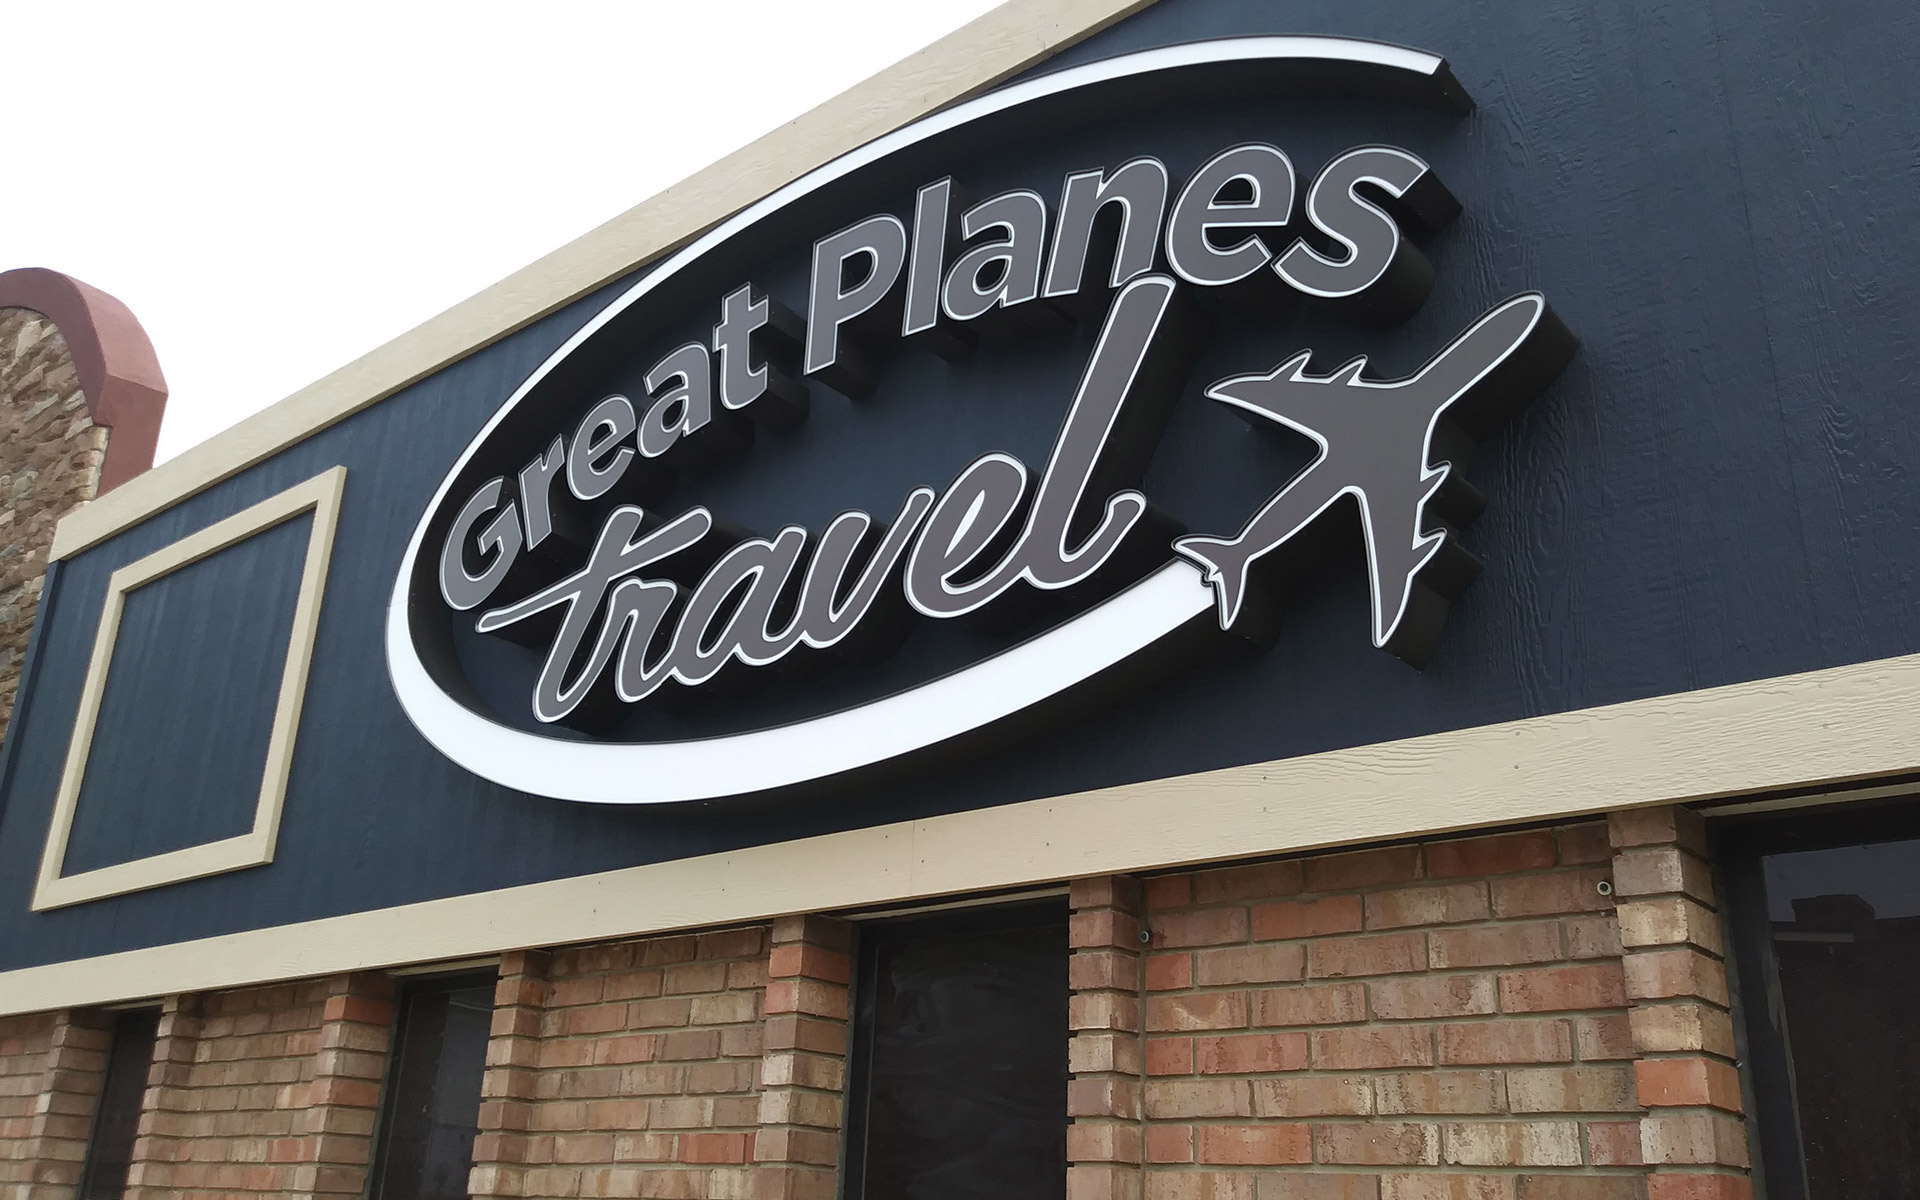 Signage Great Planes Travel